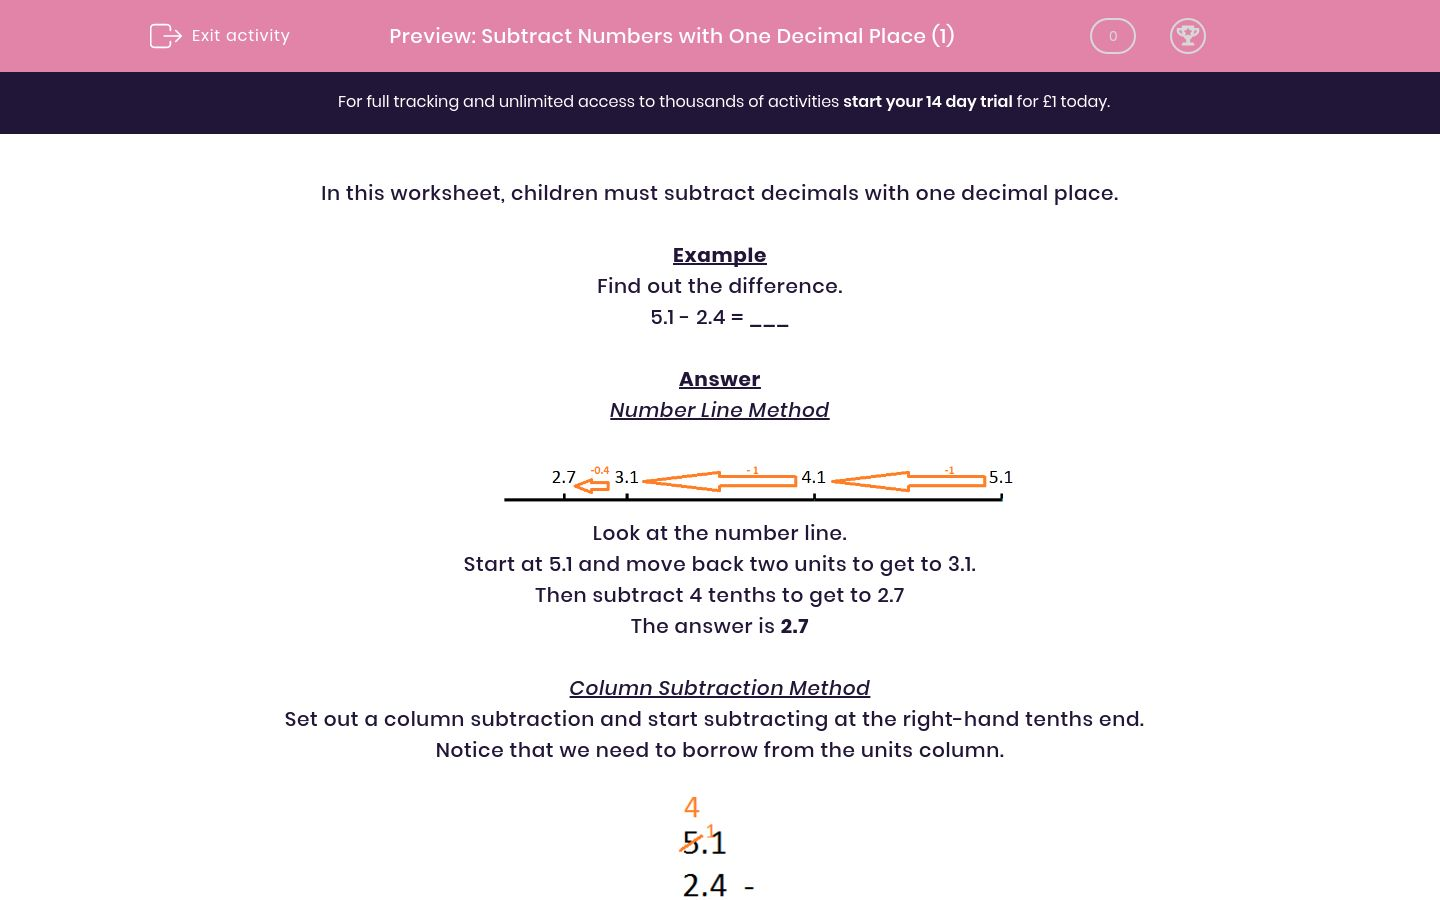 'Subtract Numbers with One Decimal Place (1)' worksheet